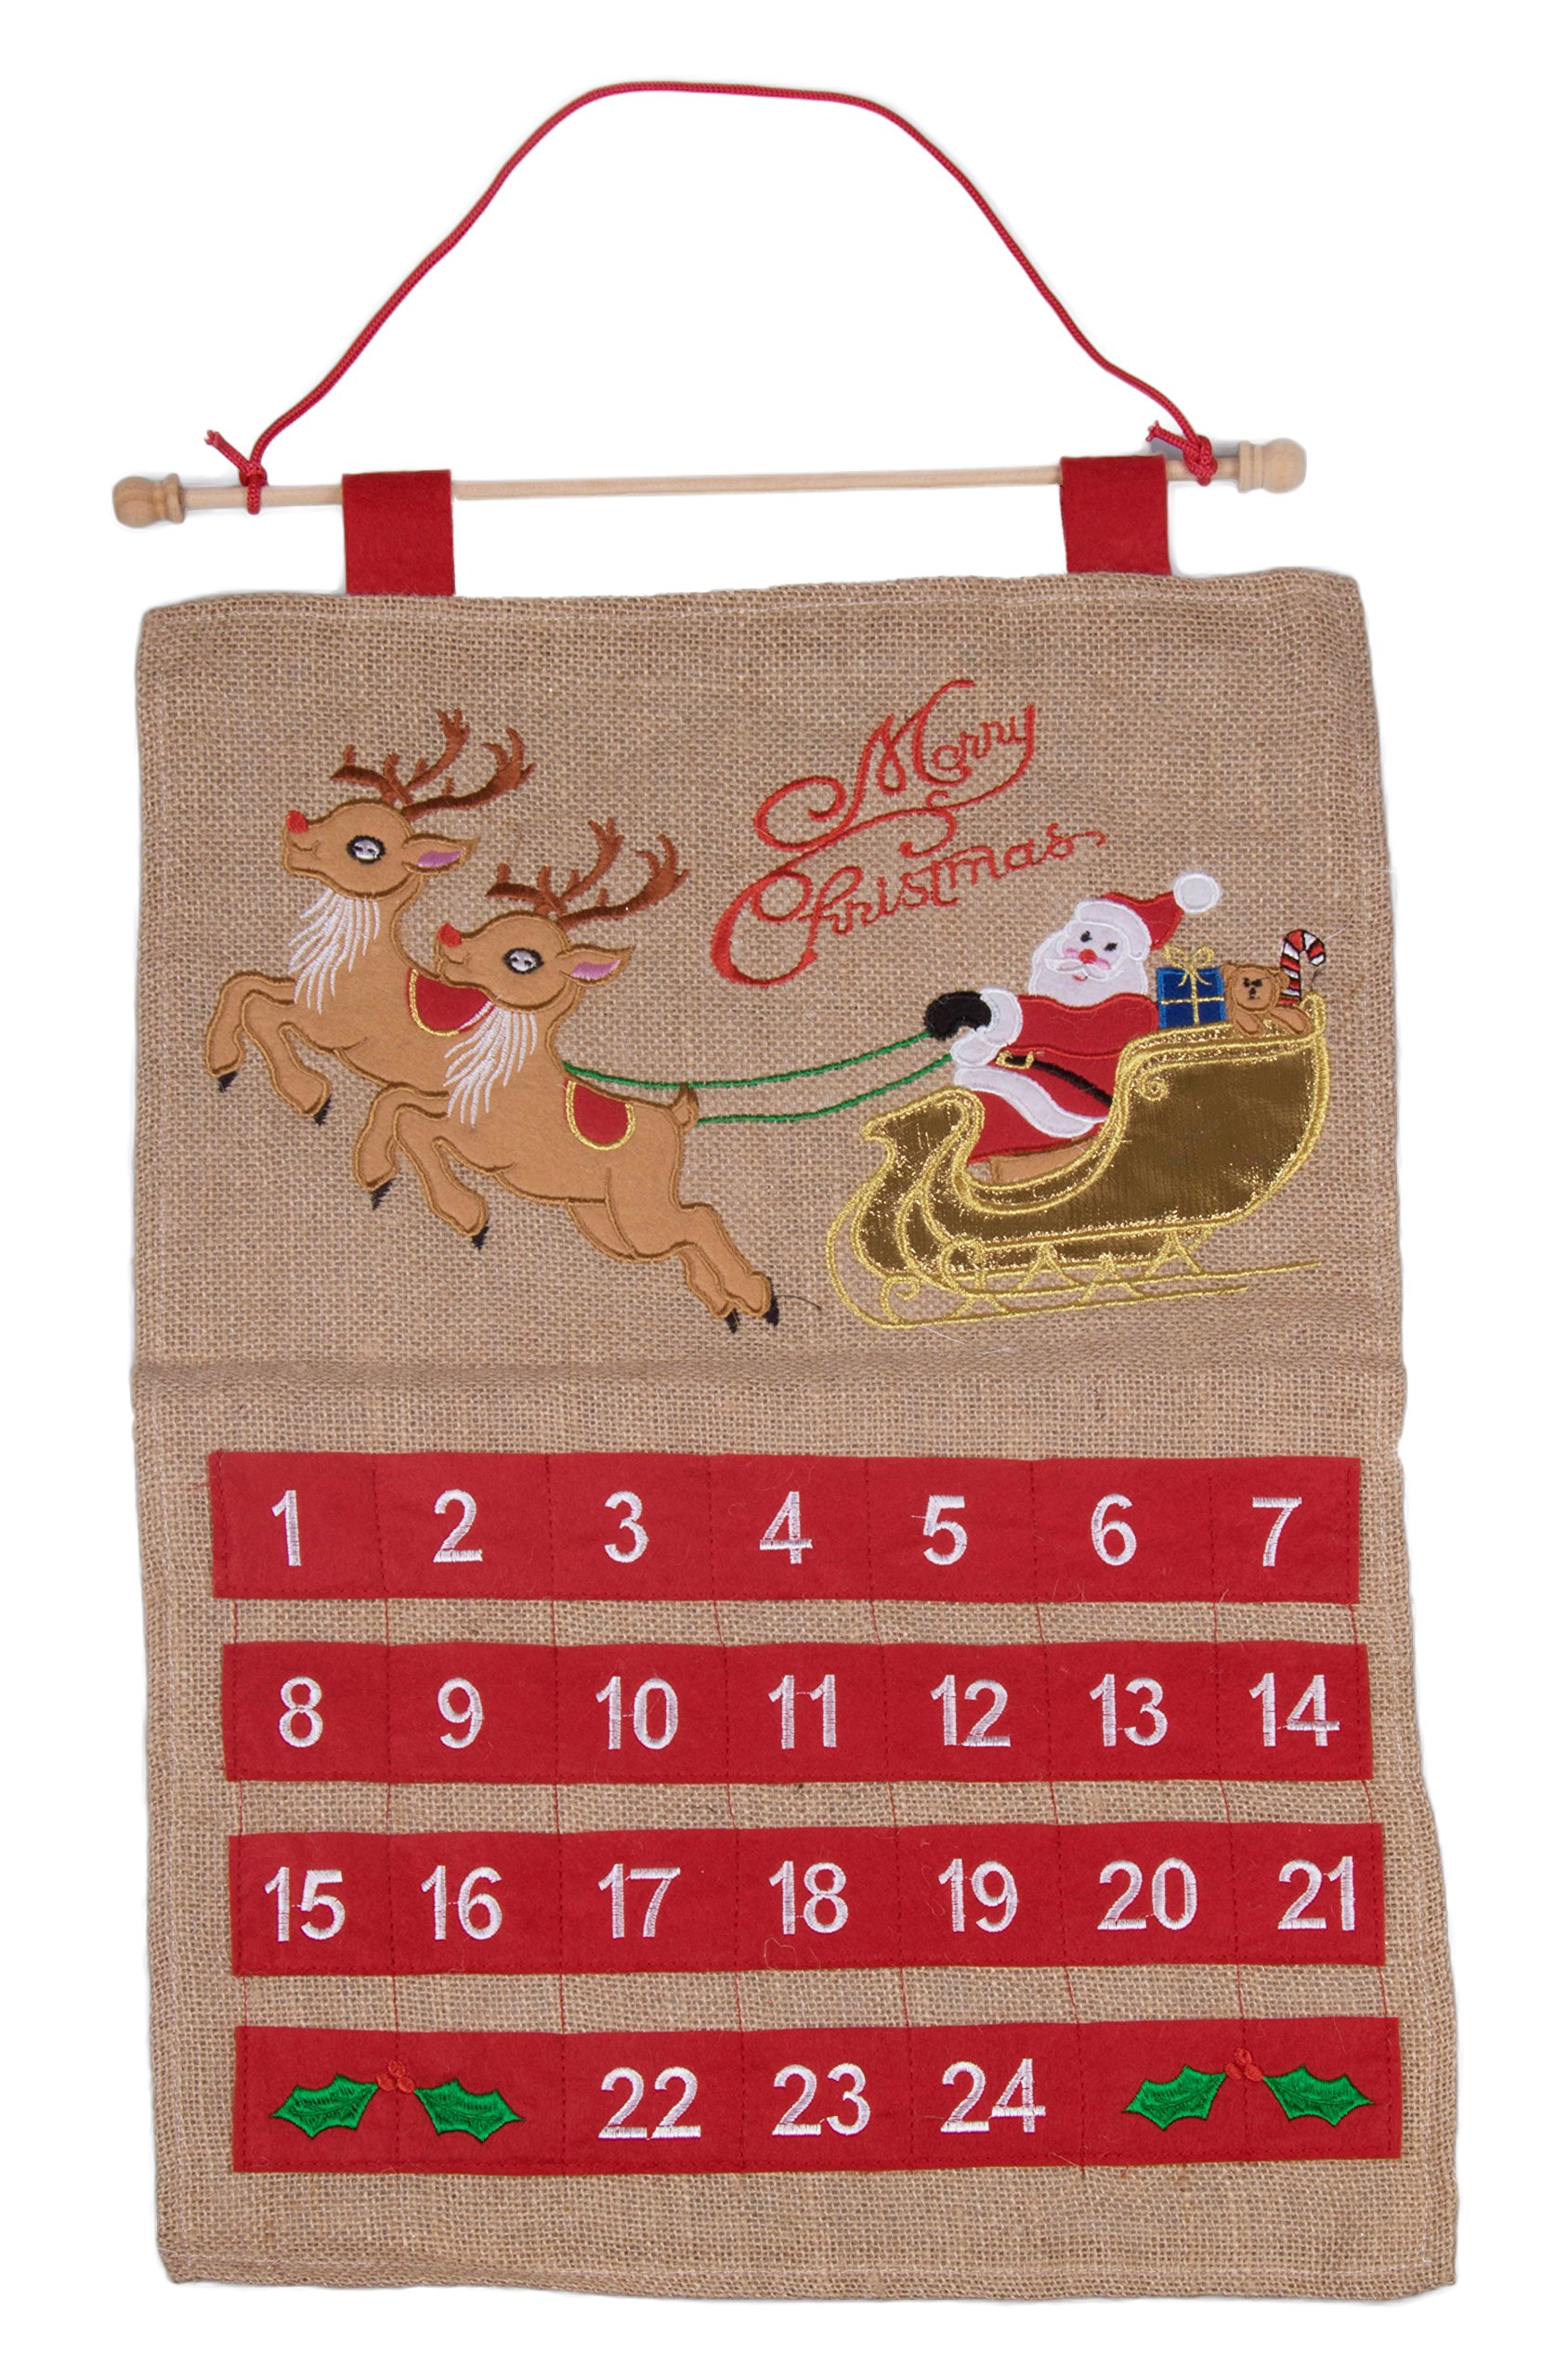 Christmas 24 Day Hanging Burlap Advent Calendar | Colorful Santa's Sleigh and Reindeer Christmas Design | Traditional Holiday Christmas Decor Theme | Perfect for Home or Office | Measures 21.75'' Tall